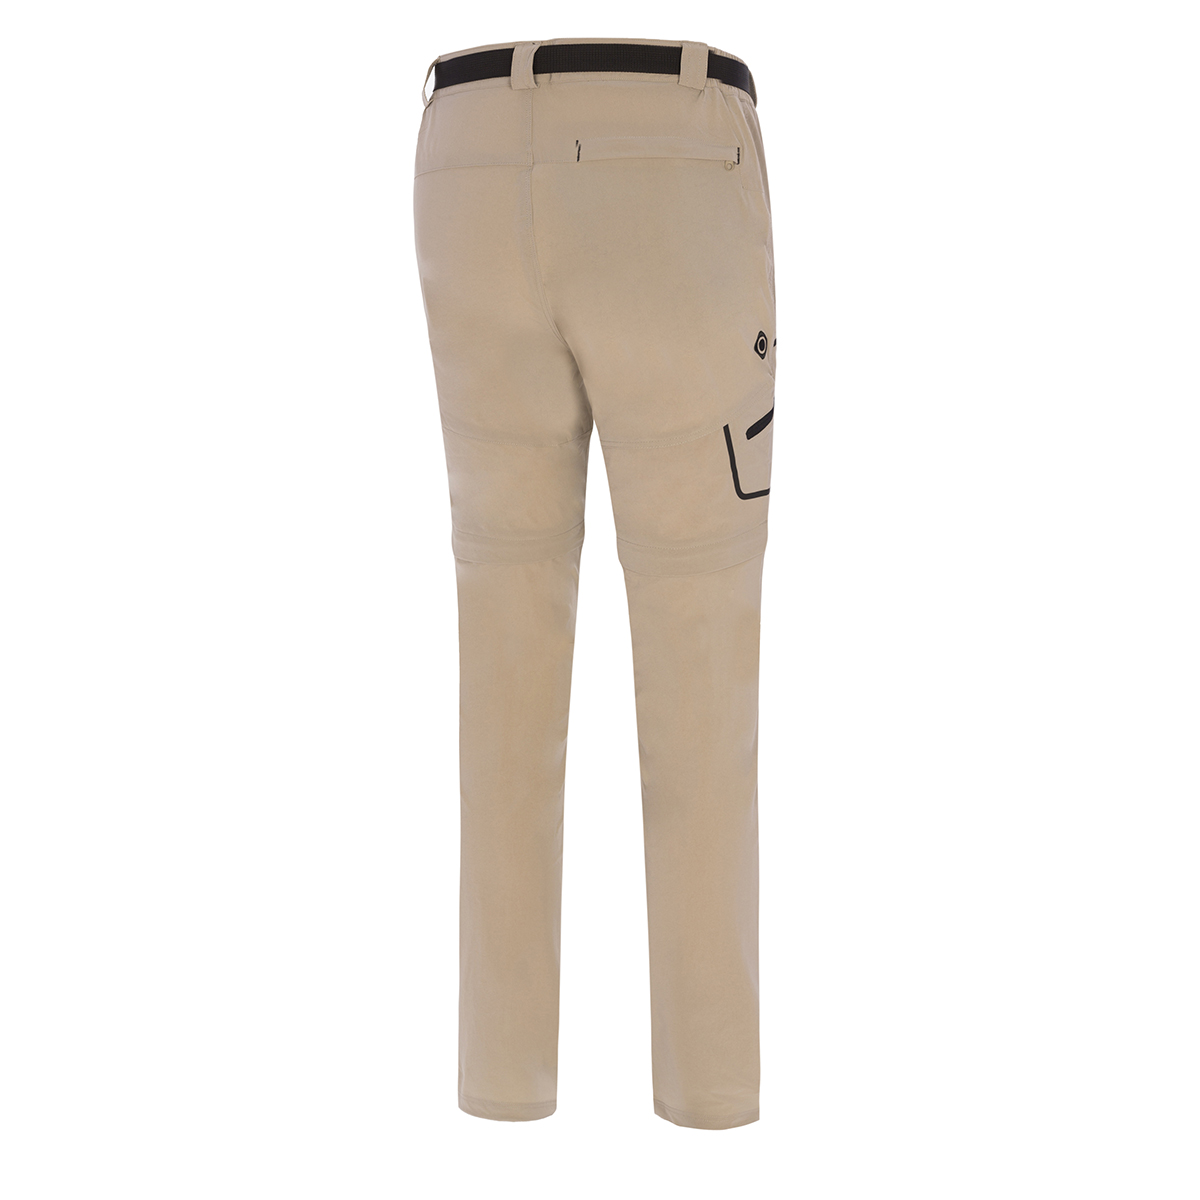 MAN'S KOBUK STRETCH PANT, DETACHABLE BEIGE